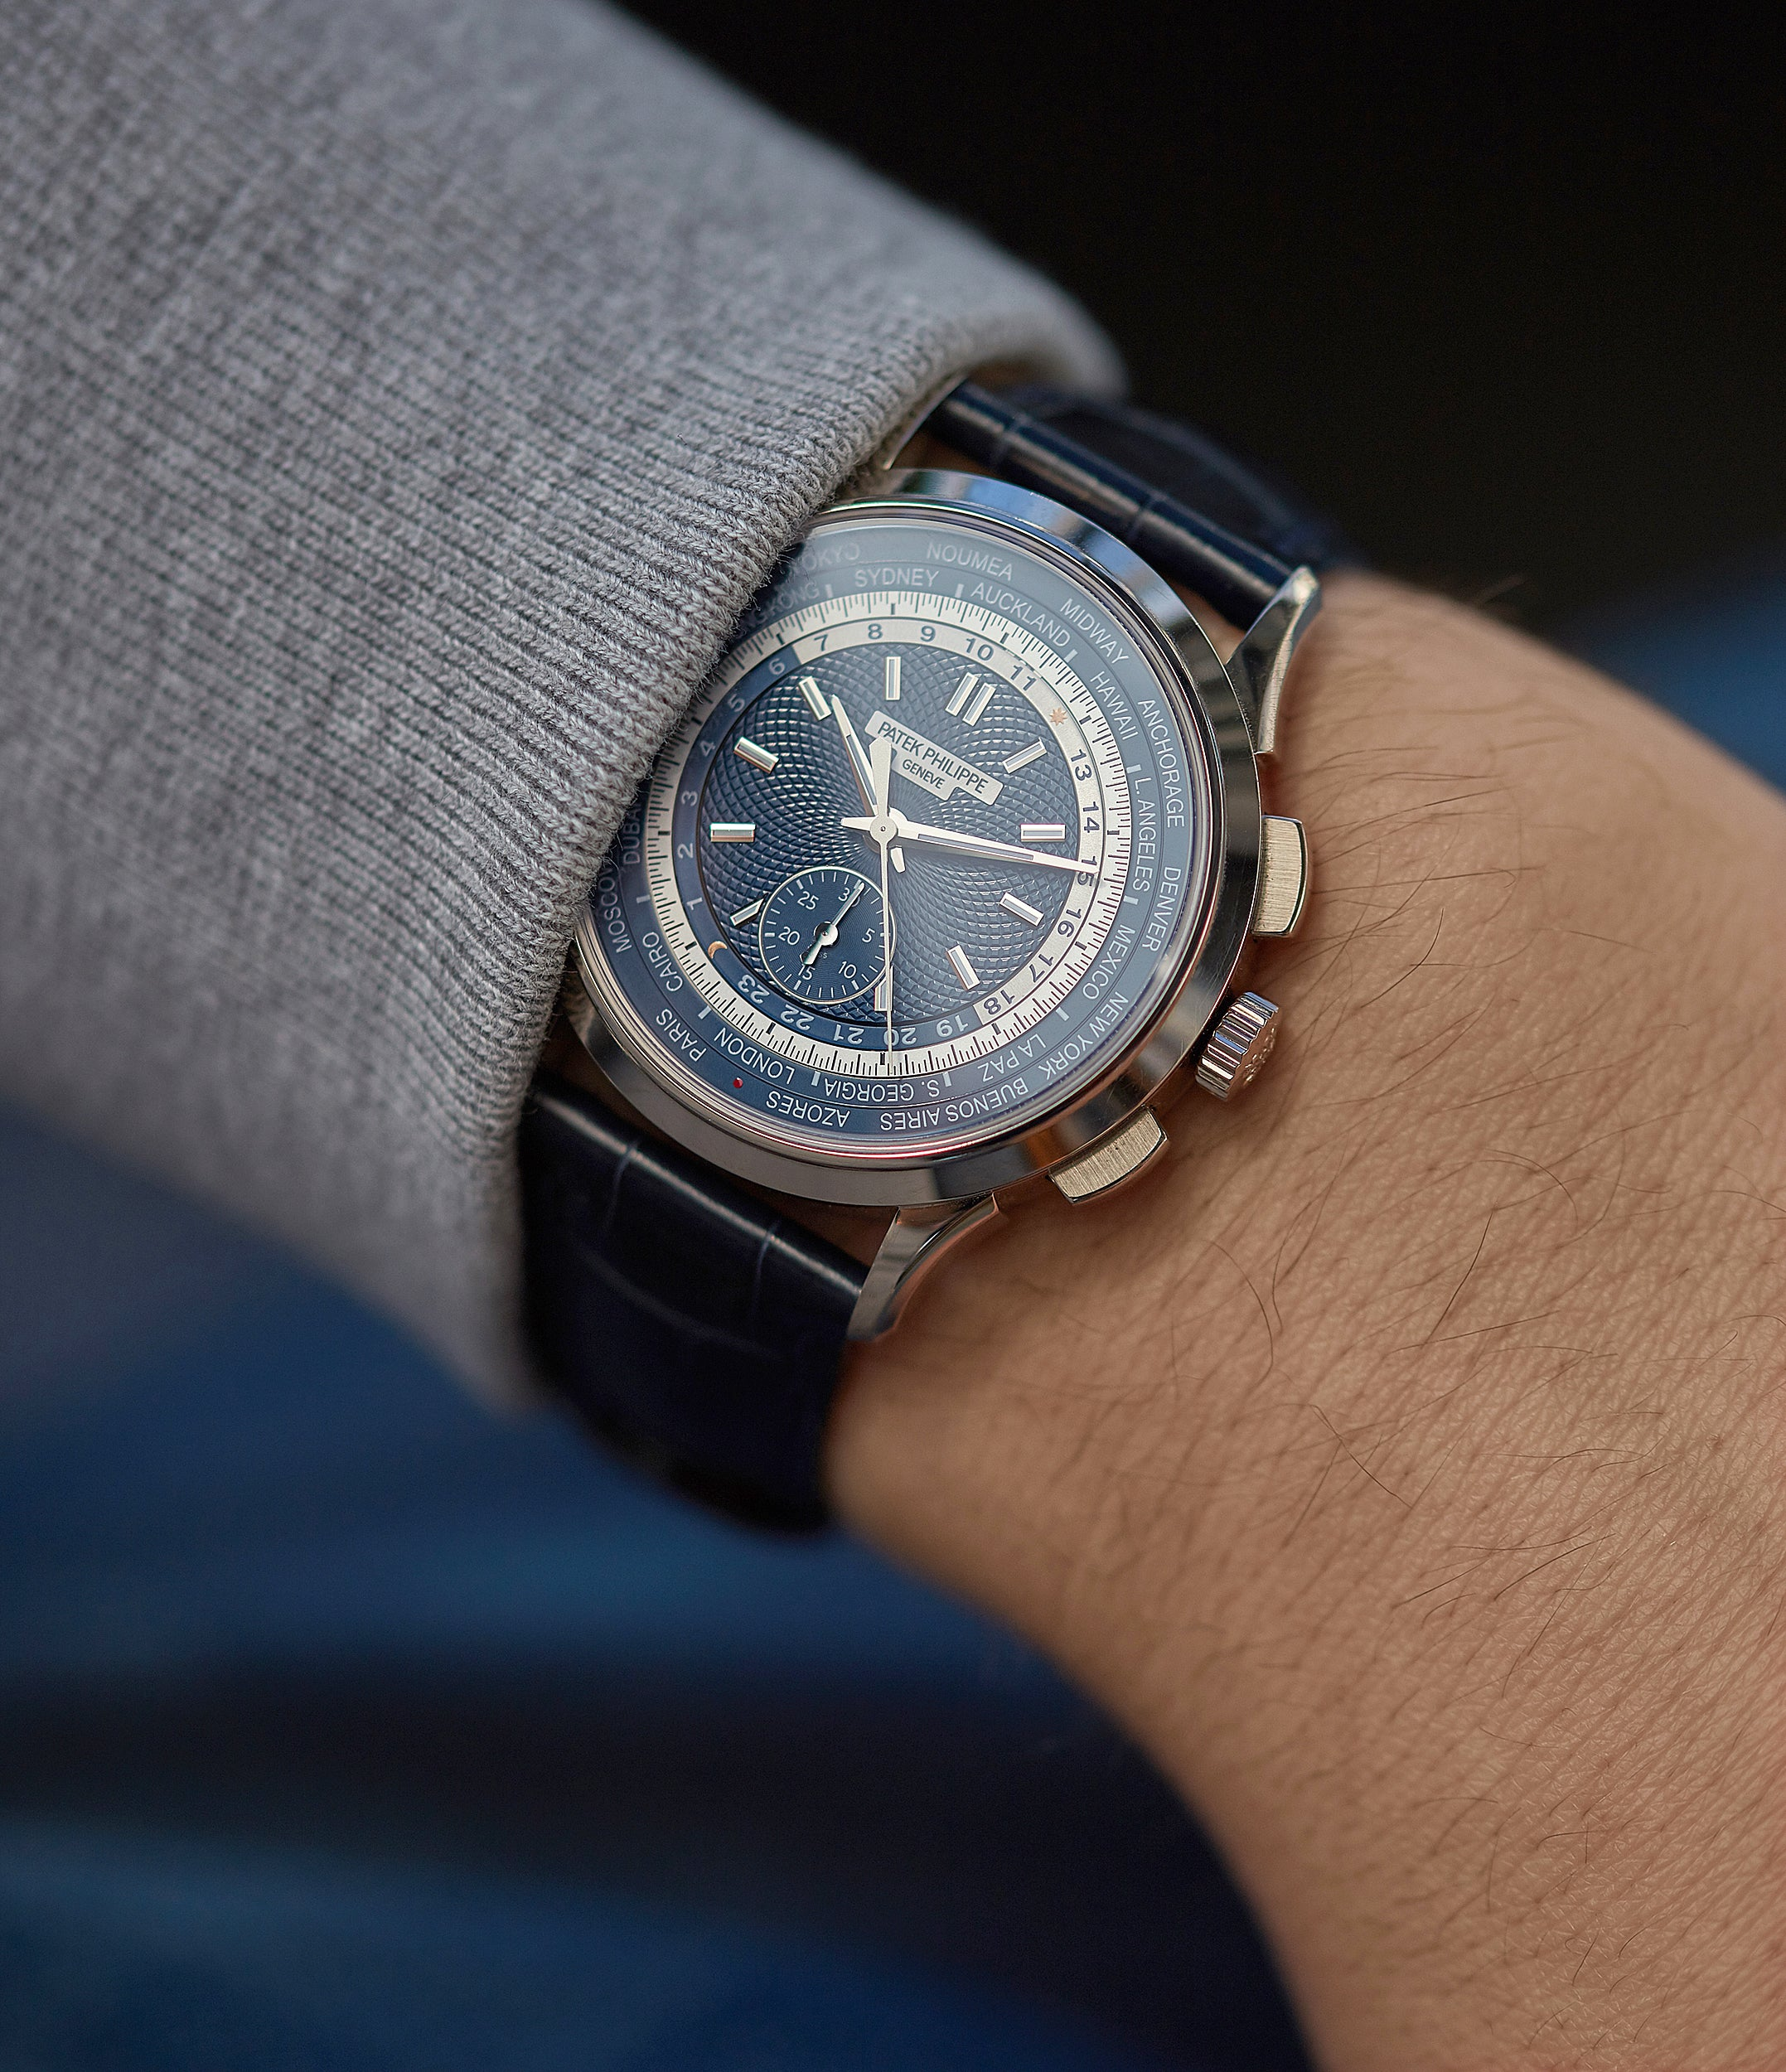 men's wristwatch Patek Philippe World Time Chronograph 5930G-001 white gold watch blue dial for sale online at A Collected Man London